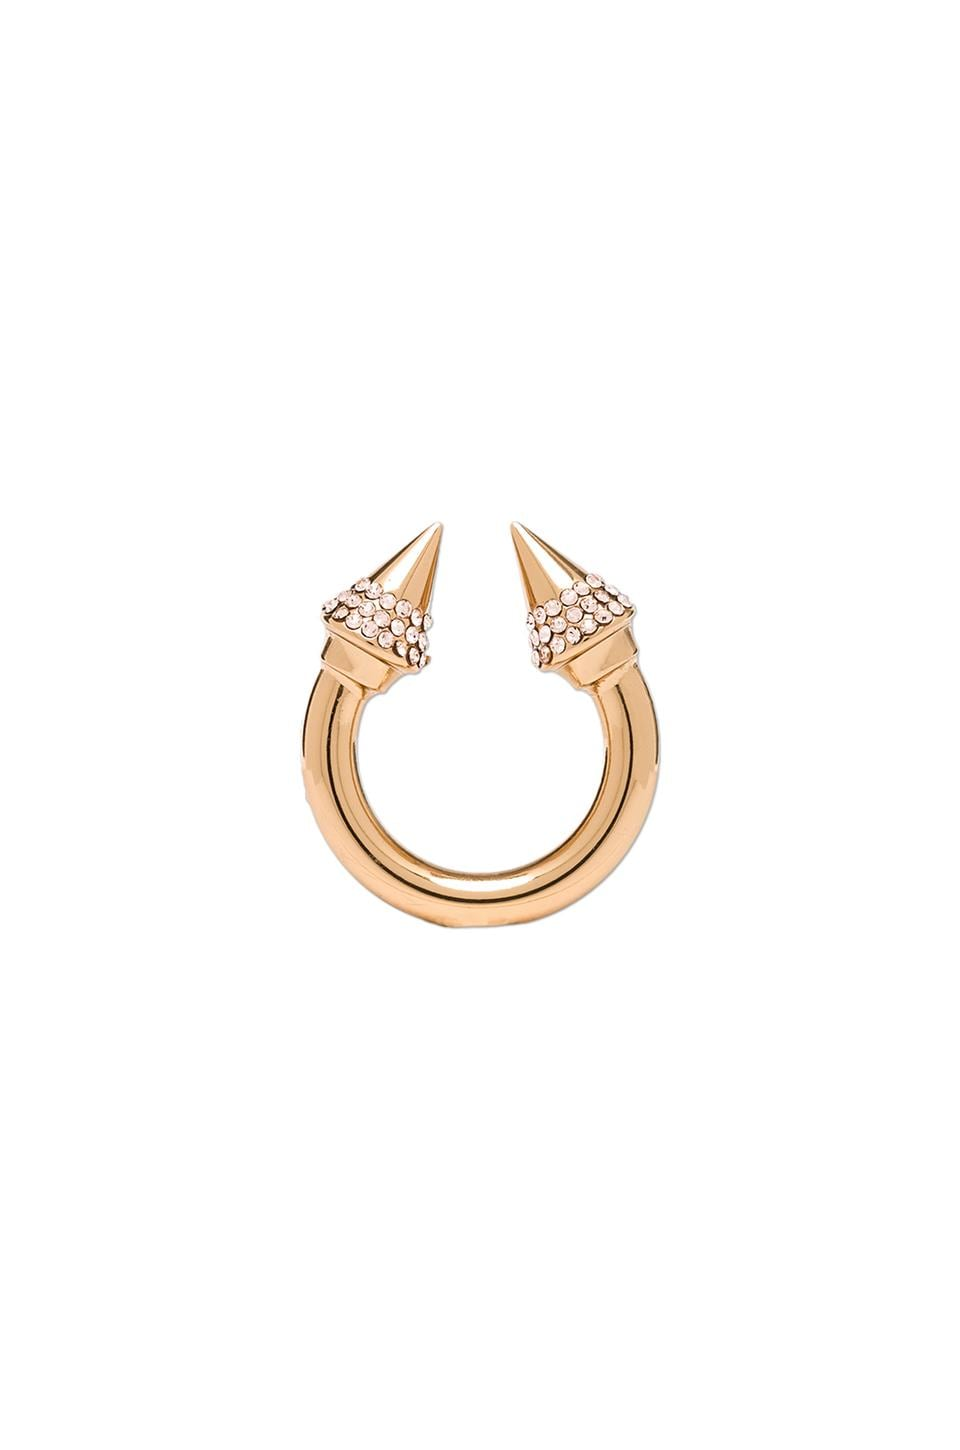 Vita Fede Titan Crystal Ring in Rosegold & Champagne